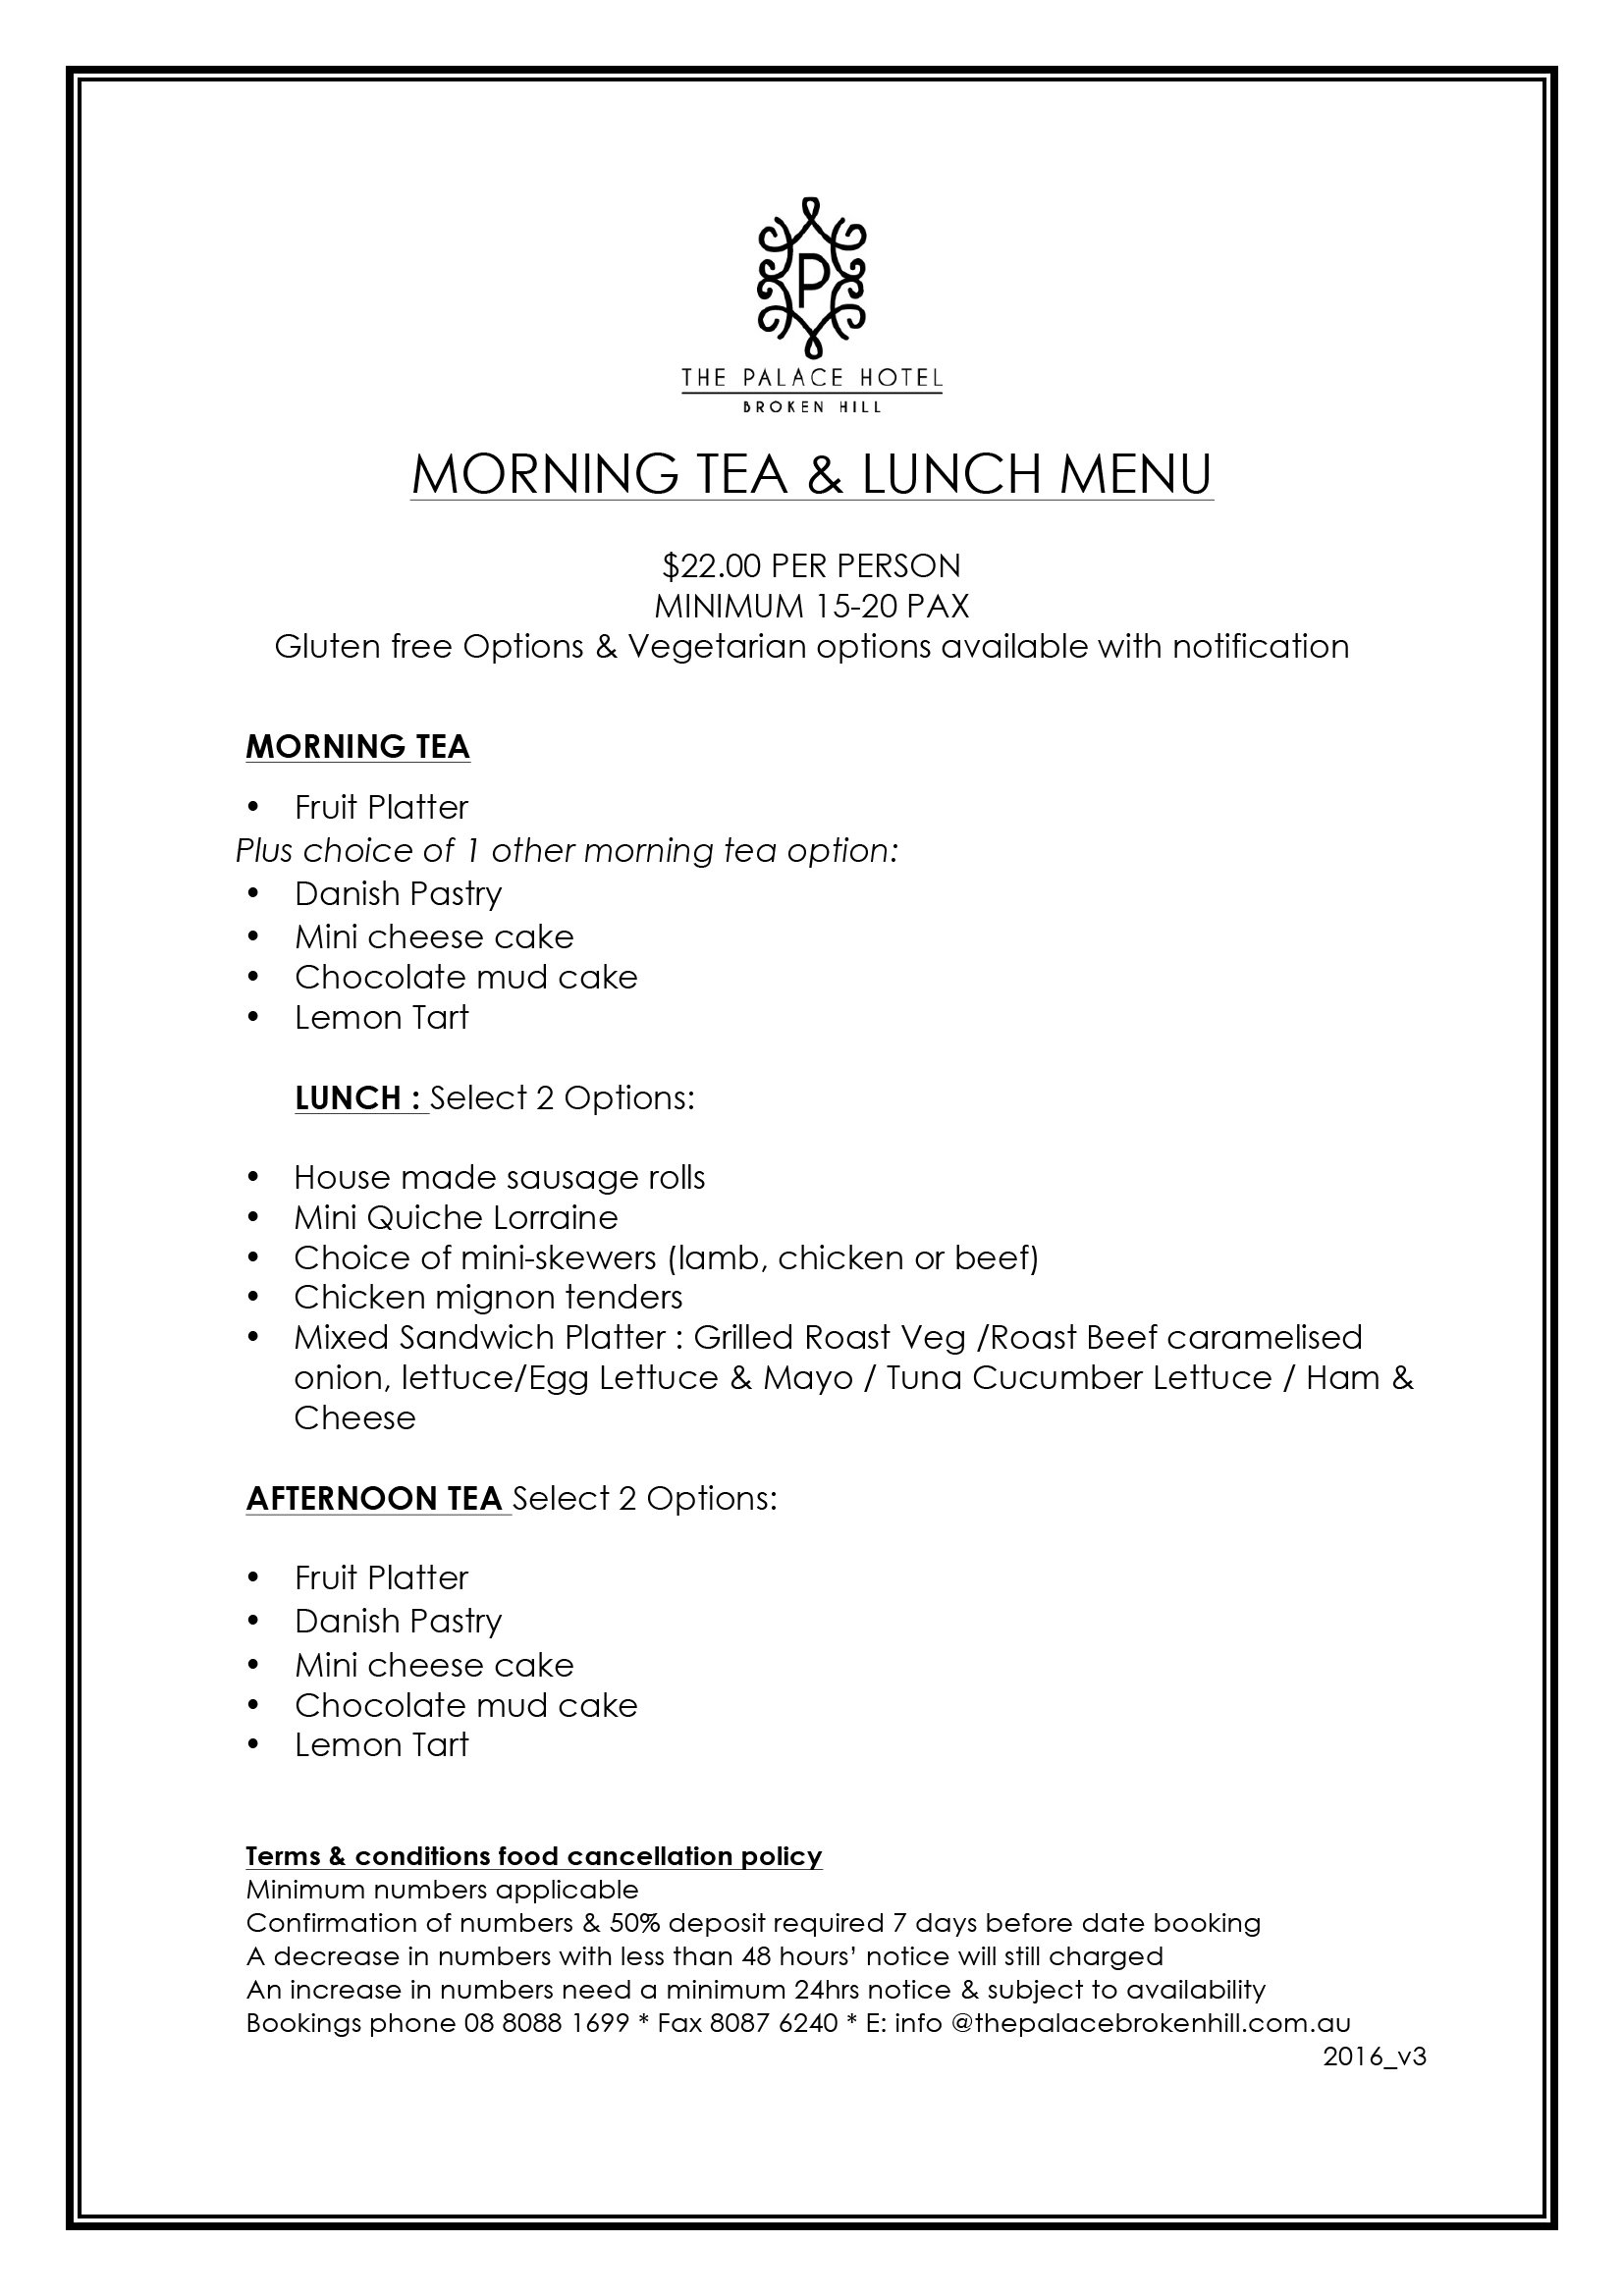 Morning tea and lunch options